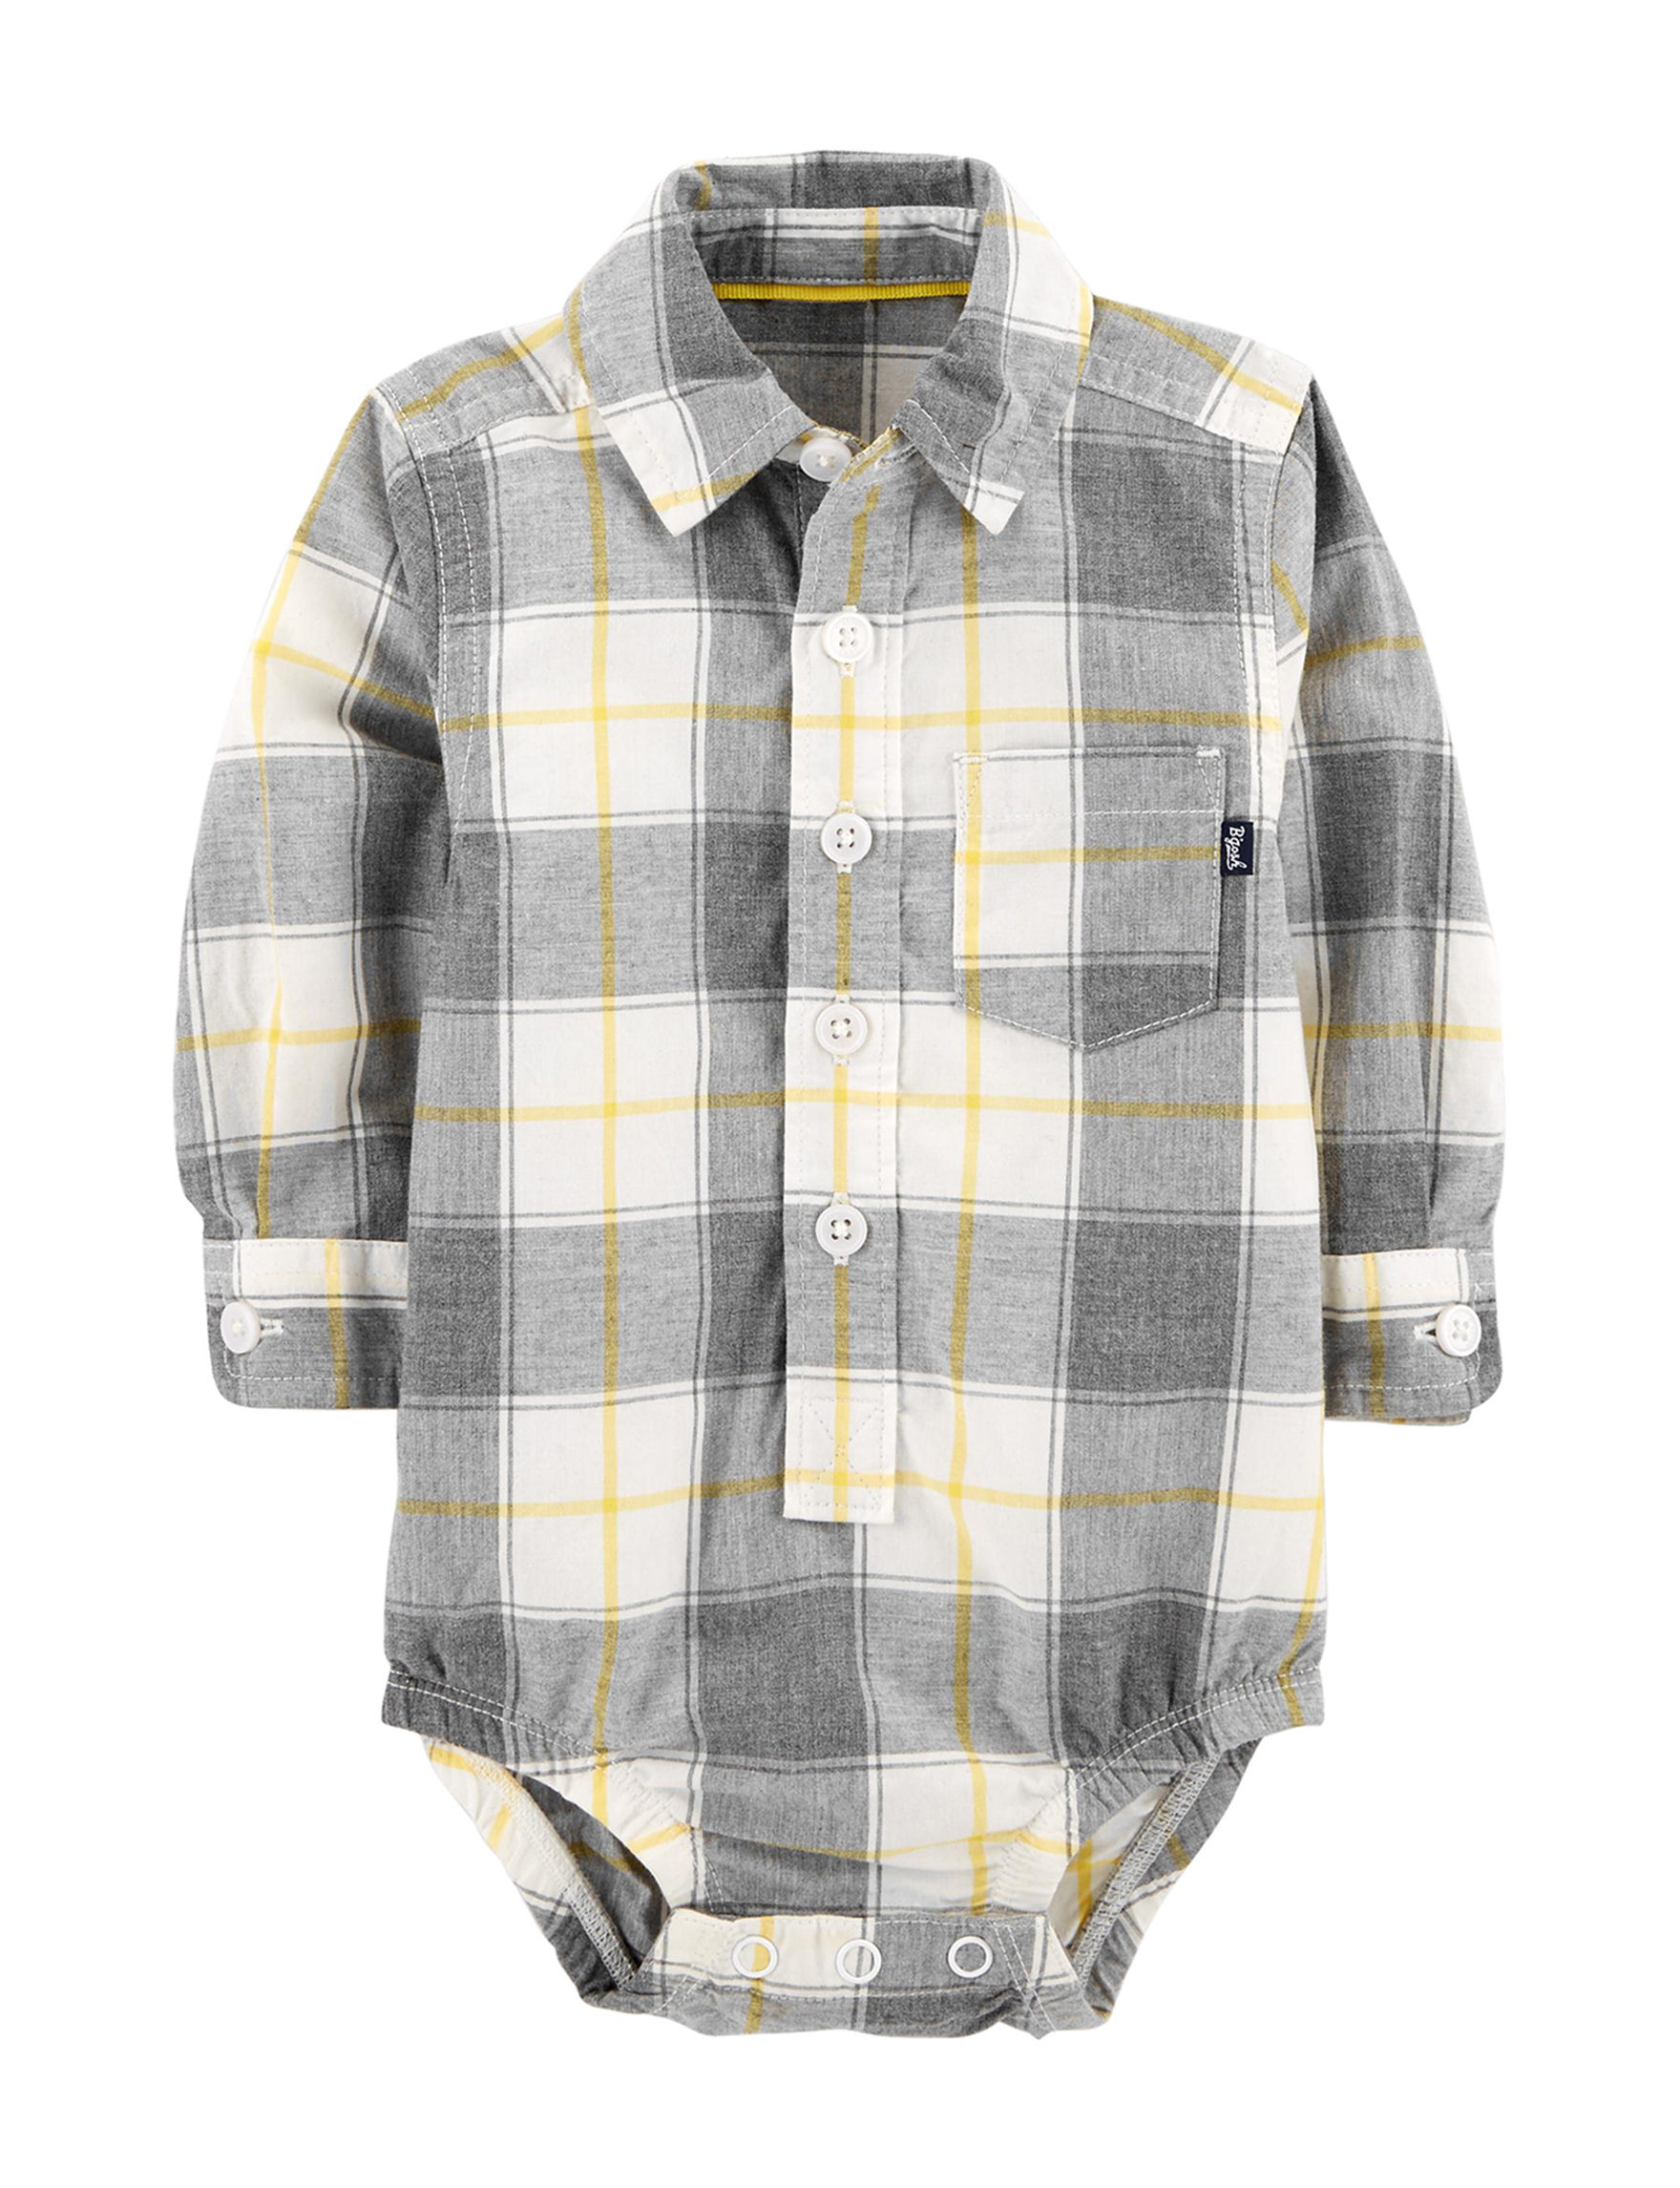 Oshkosh B'Gosh White / Yellow / Black